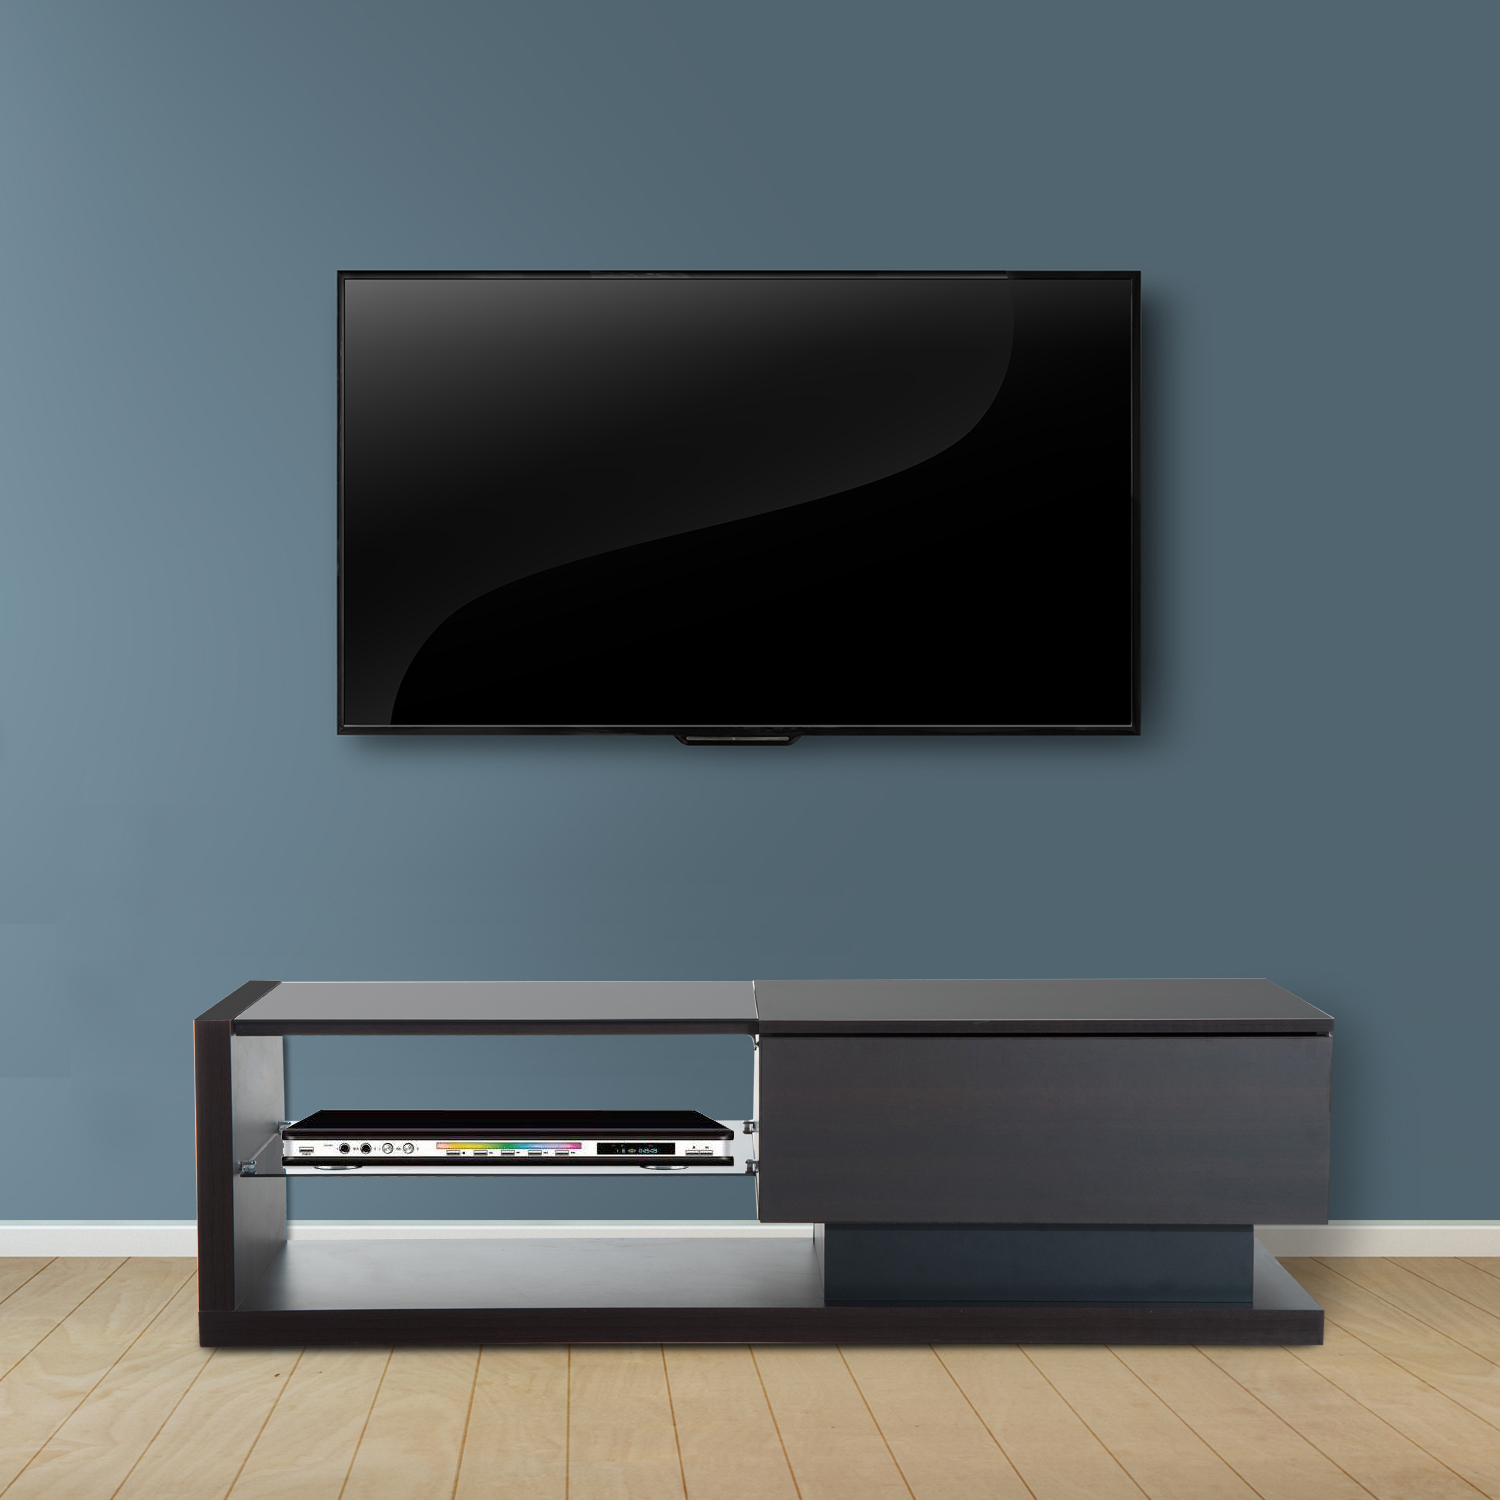 Details About Wood Wall Mount Floating Media Center Tv Stand Shelf Media Console Dvd Storage